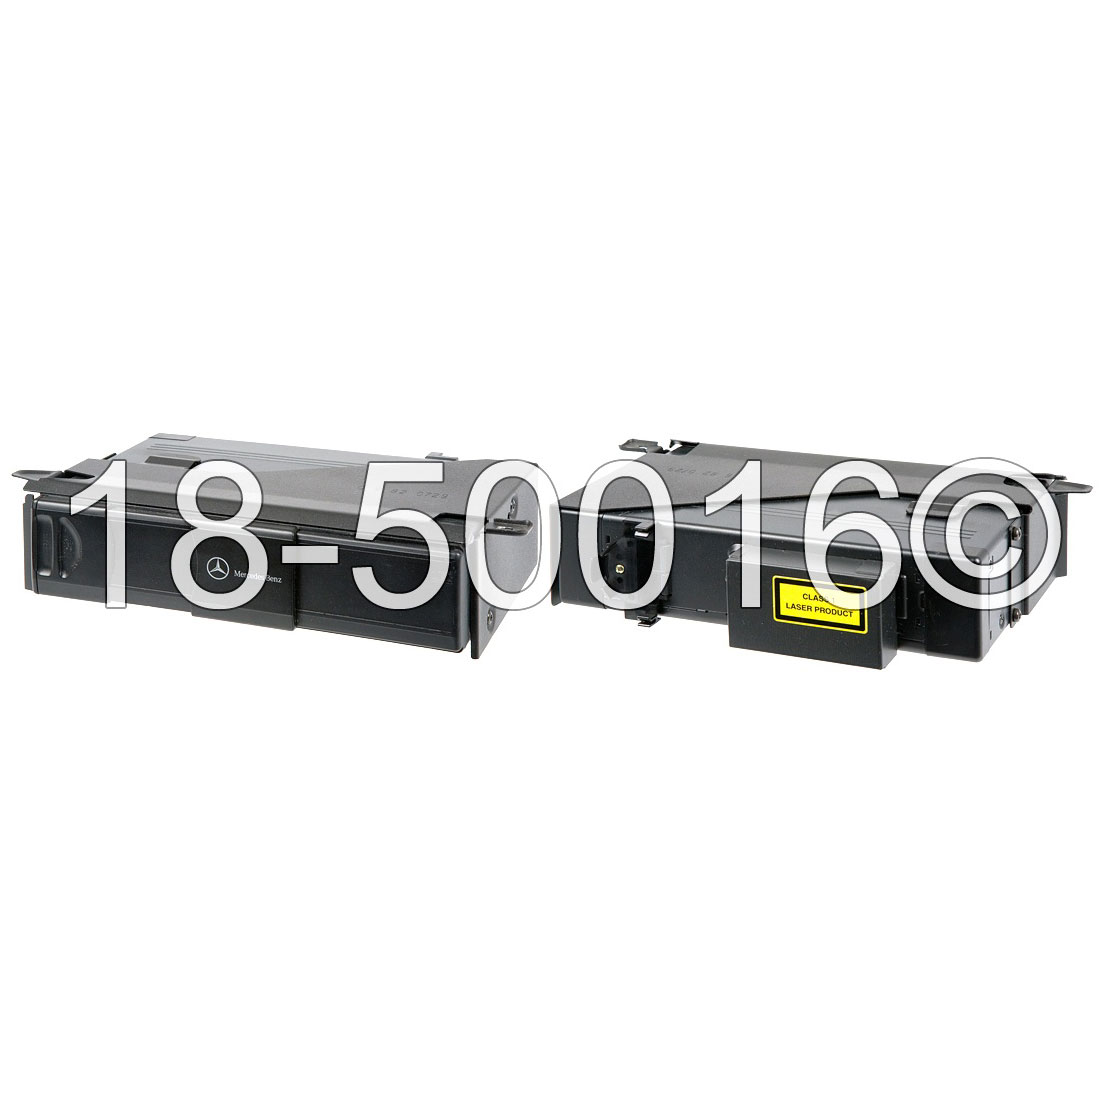 Mercedes_Benz G500                           CD or DVD ChangerCD or DVD Changer